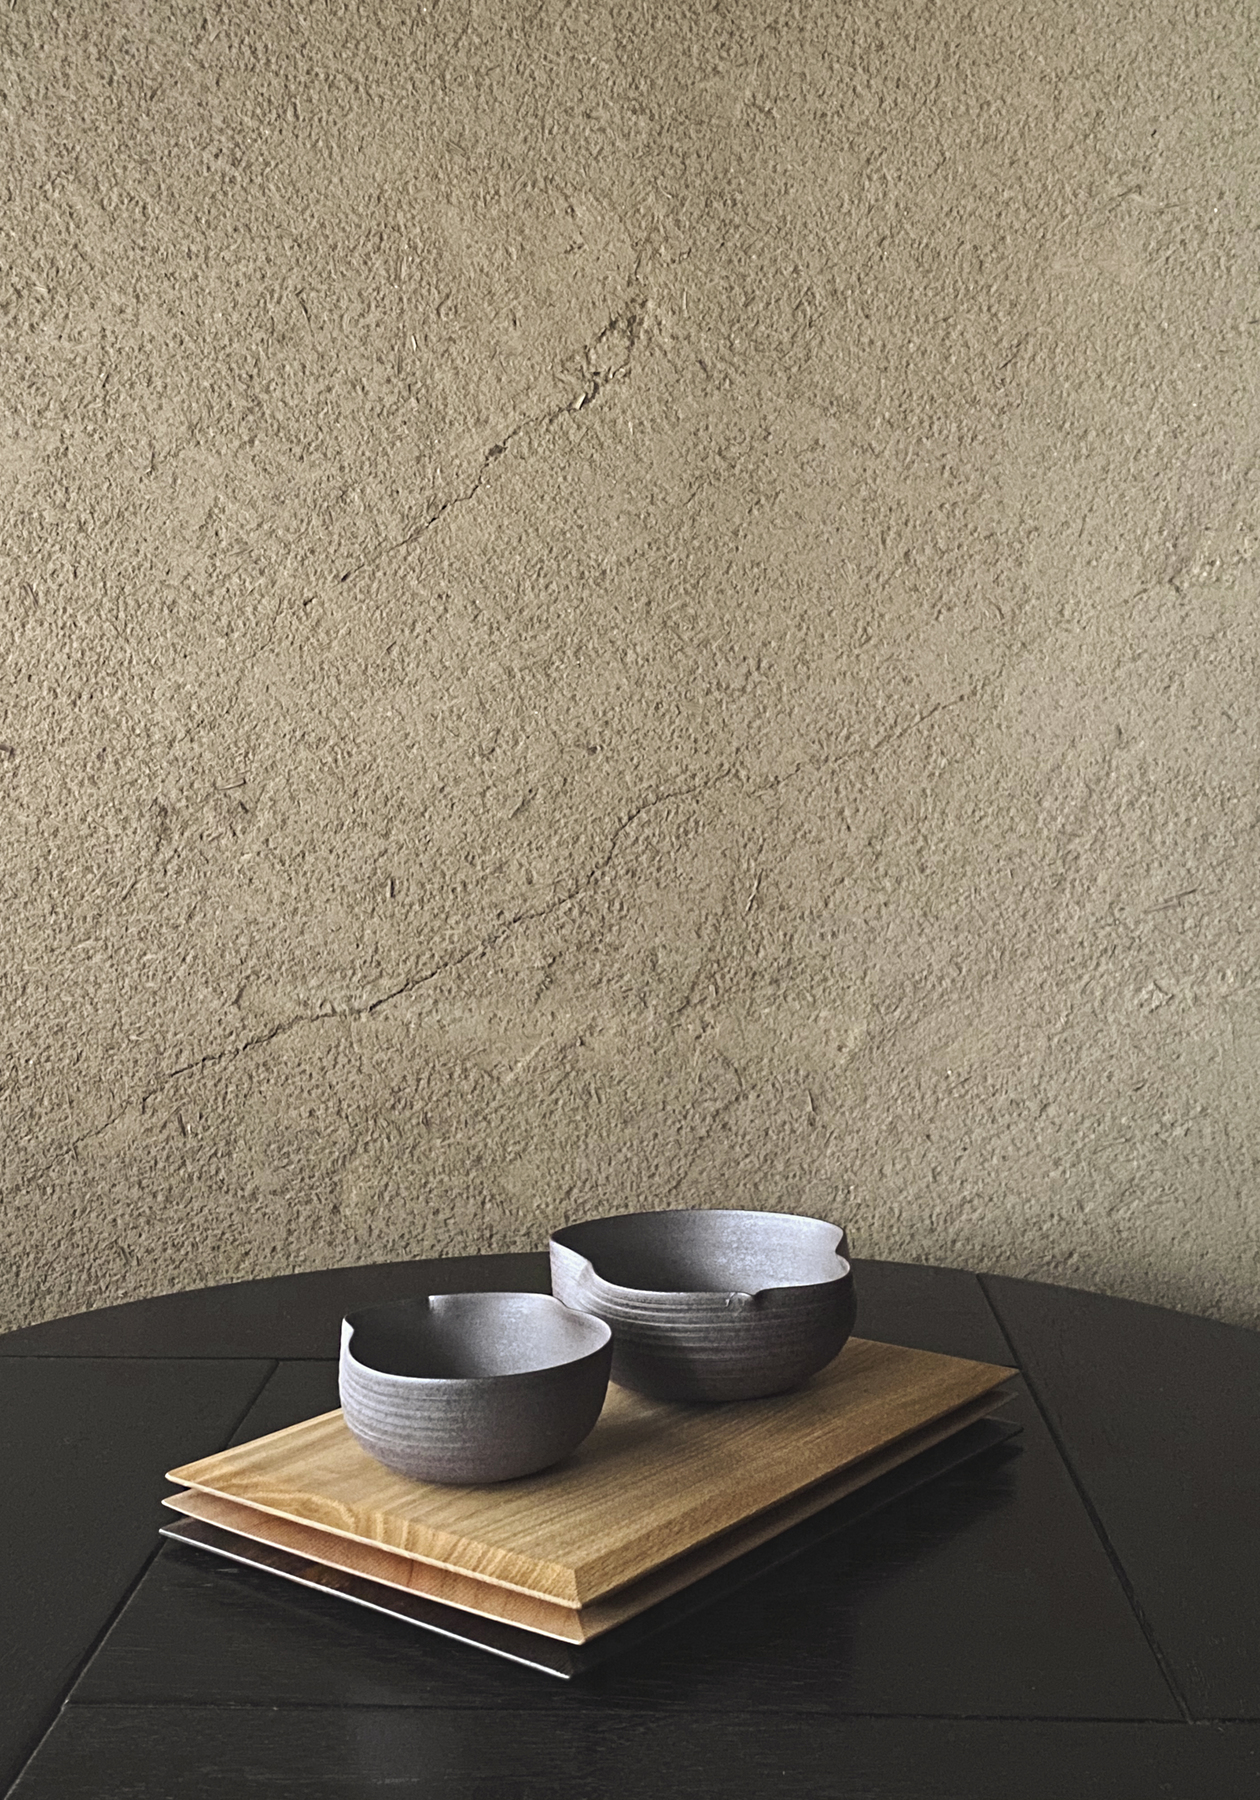 CERAMIC SERIES FROM KYOTO